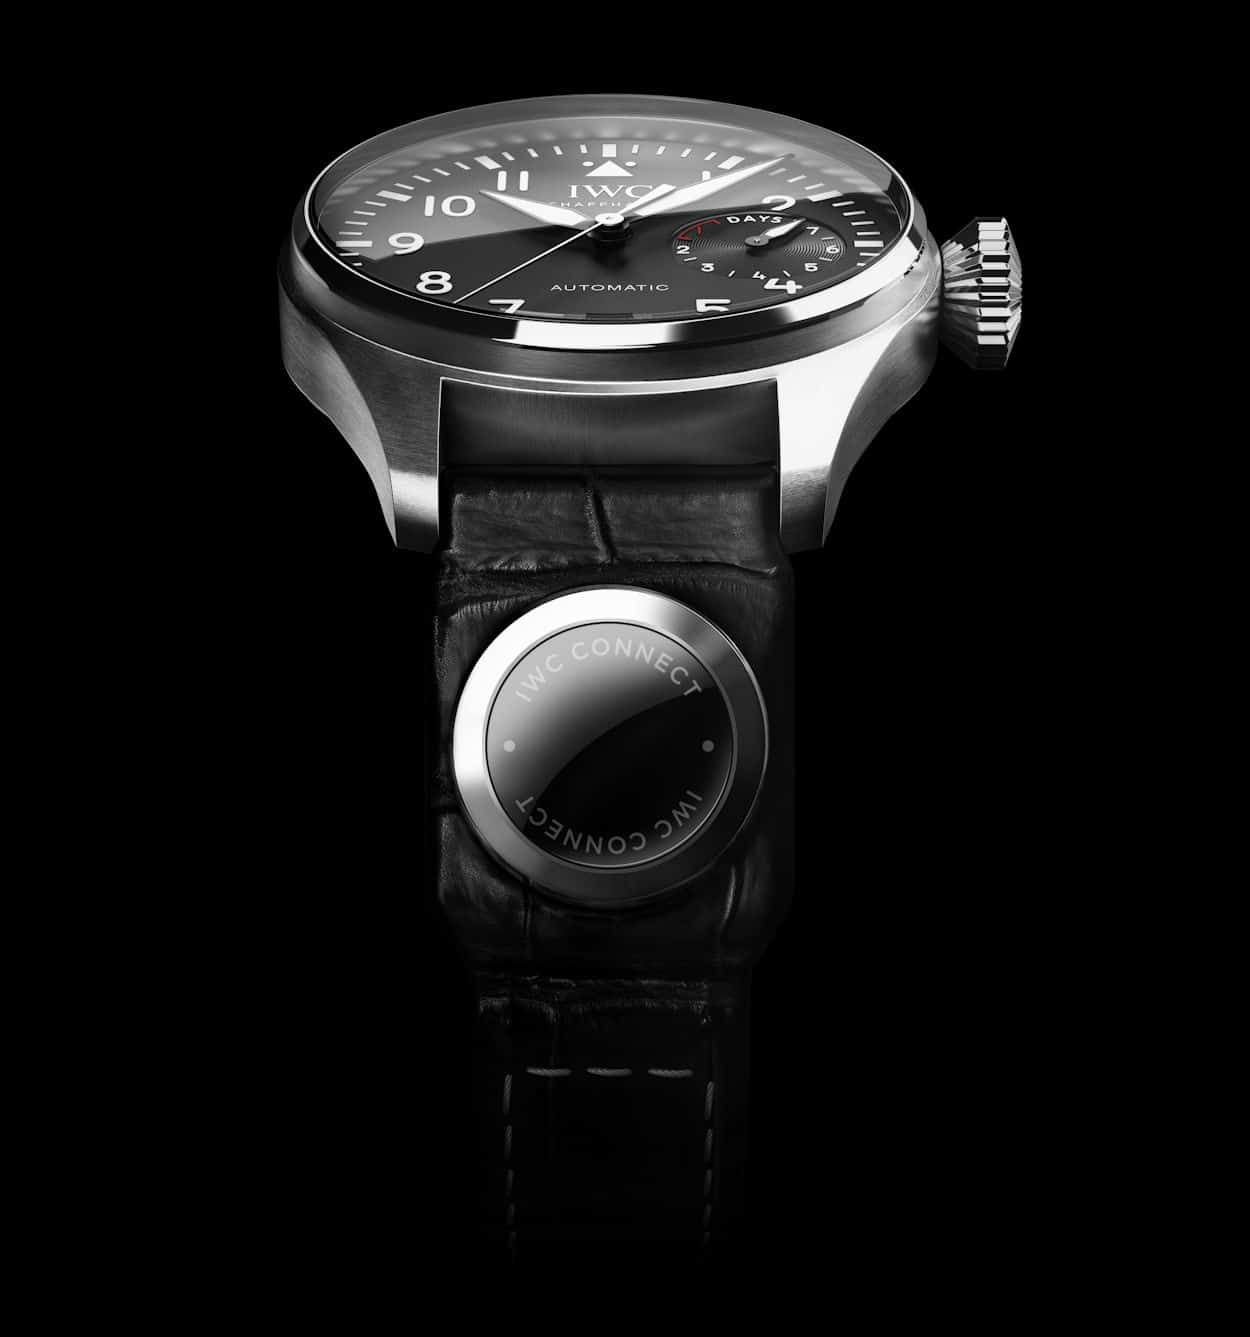 IWC CONNETCT